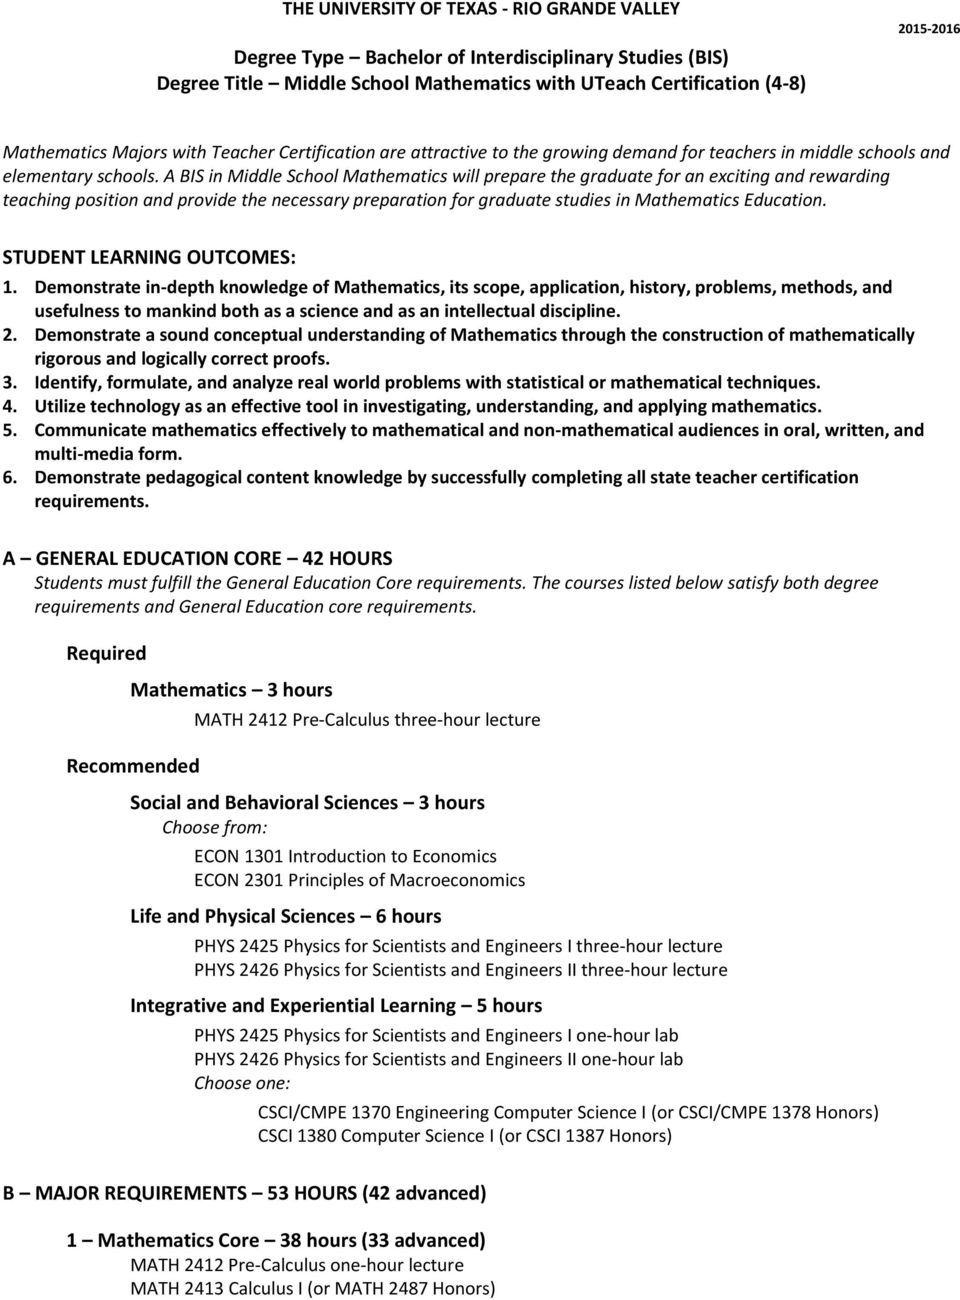 A BIS in Middle School Mathematics will prepare the graduate for an exciting and rewarding teaching position and provide the necessary preparation for graduate studies in Mathematics Education.